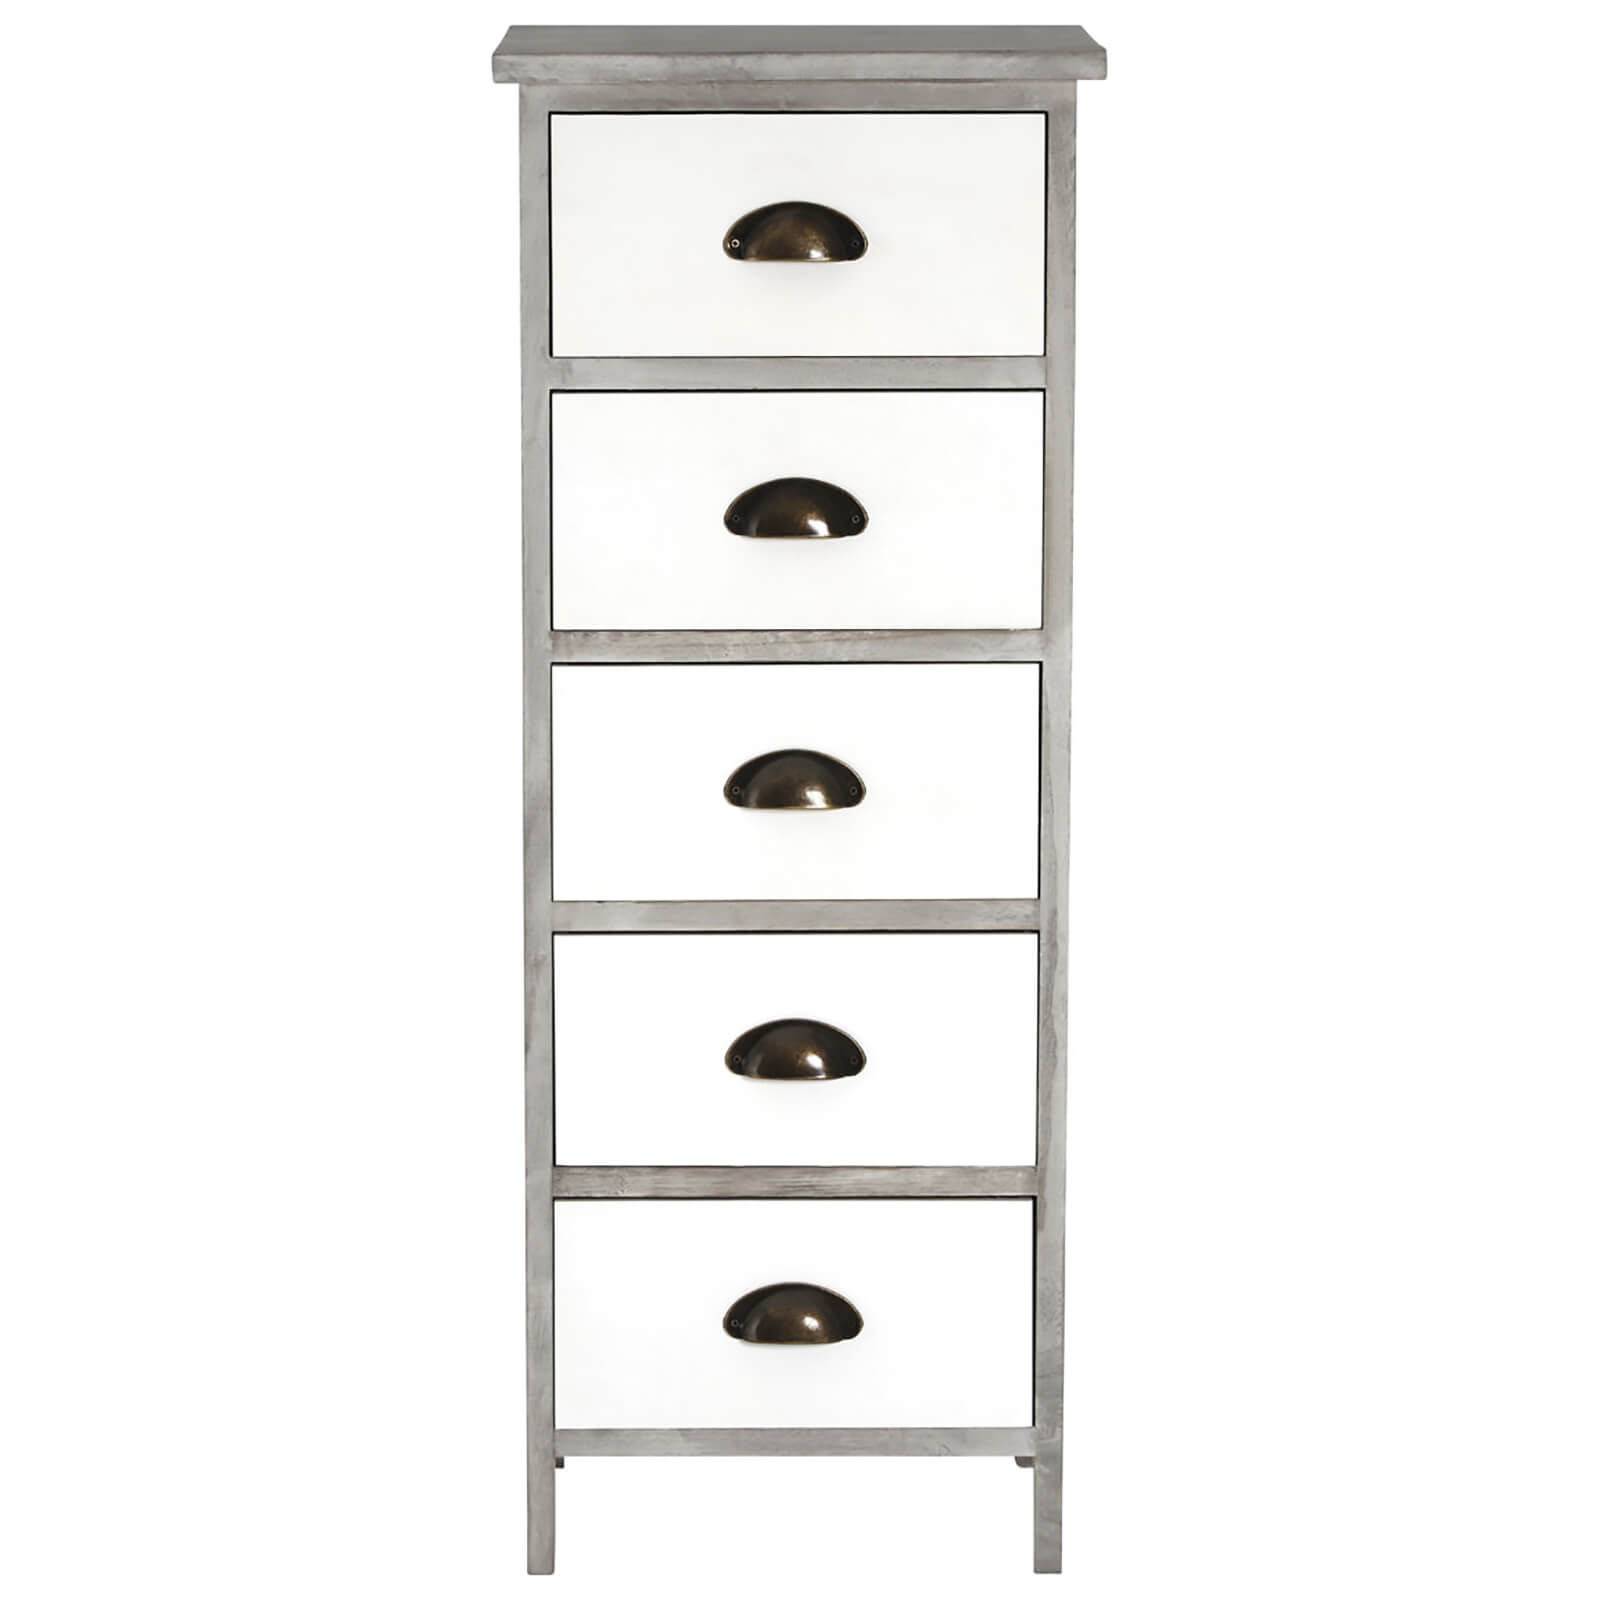 Fifty Five South New Urban Five Drawer Loft Chest - White/Grey Wash